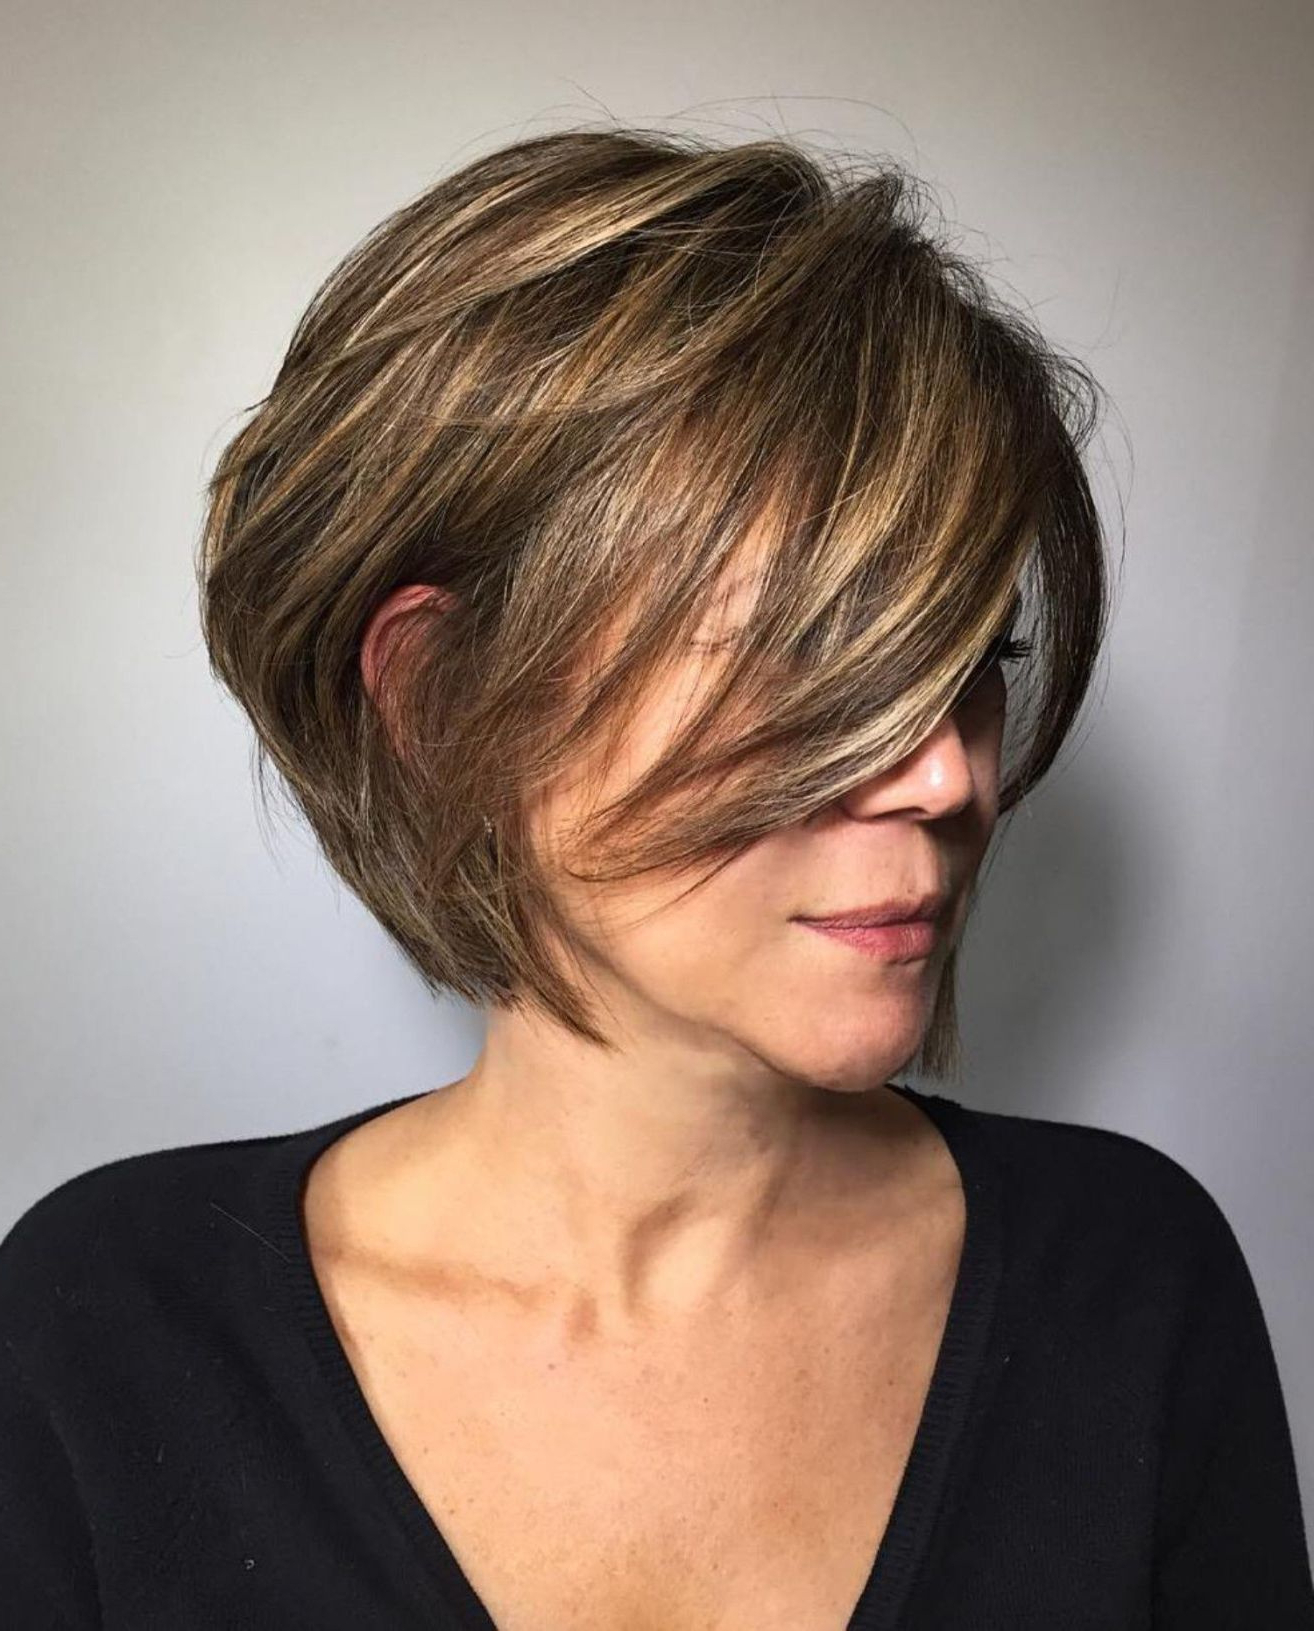 2020 Choppy Side Parted Bob Hairstyles Intended For Fashion : Intriguing Choppy Side Parted Pixie Bob Hairstyles Photo (View 3 of 20)